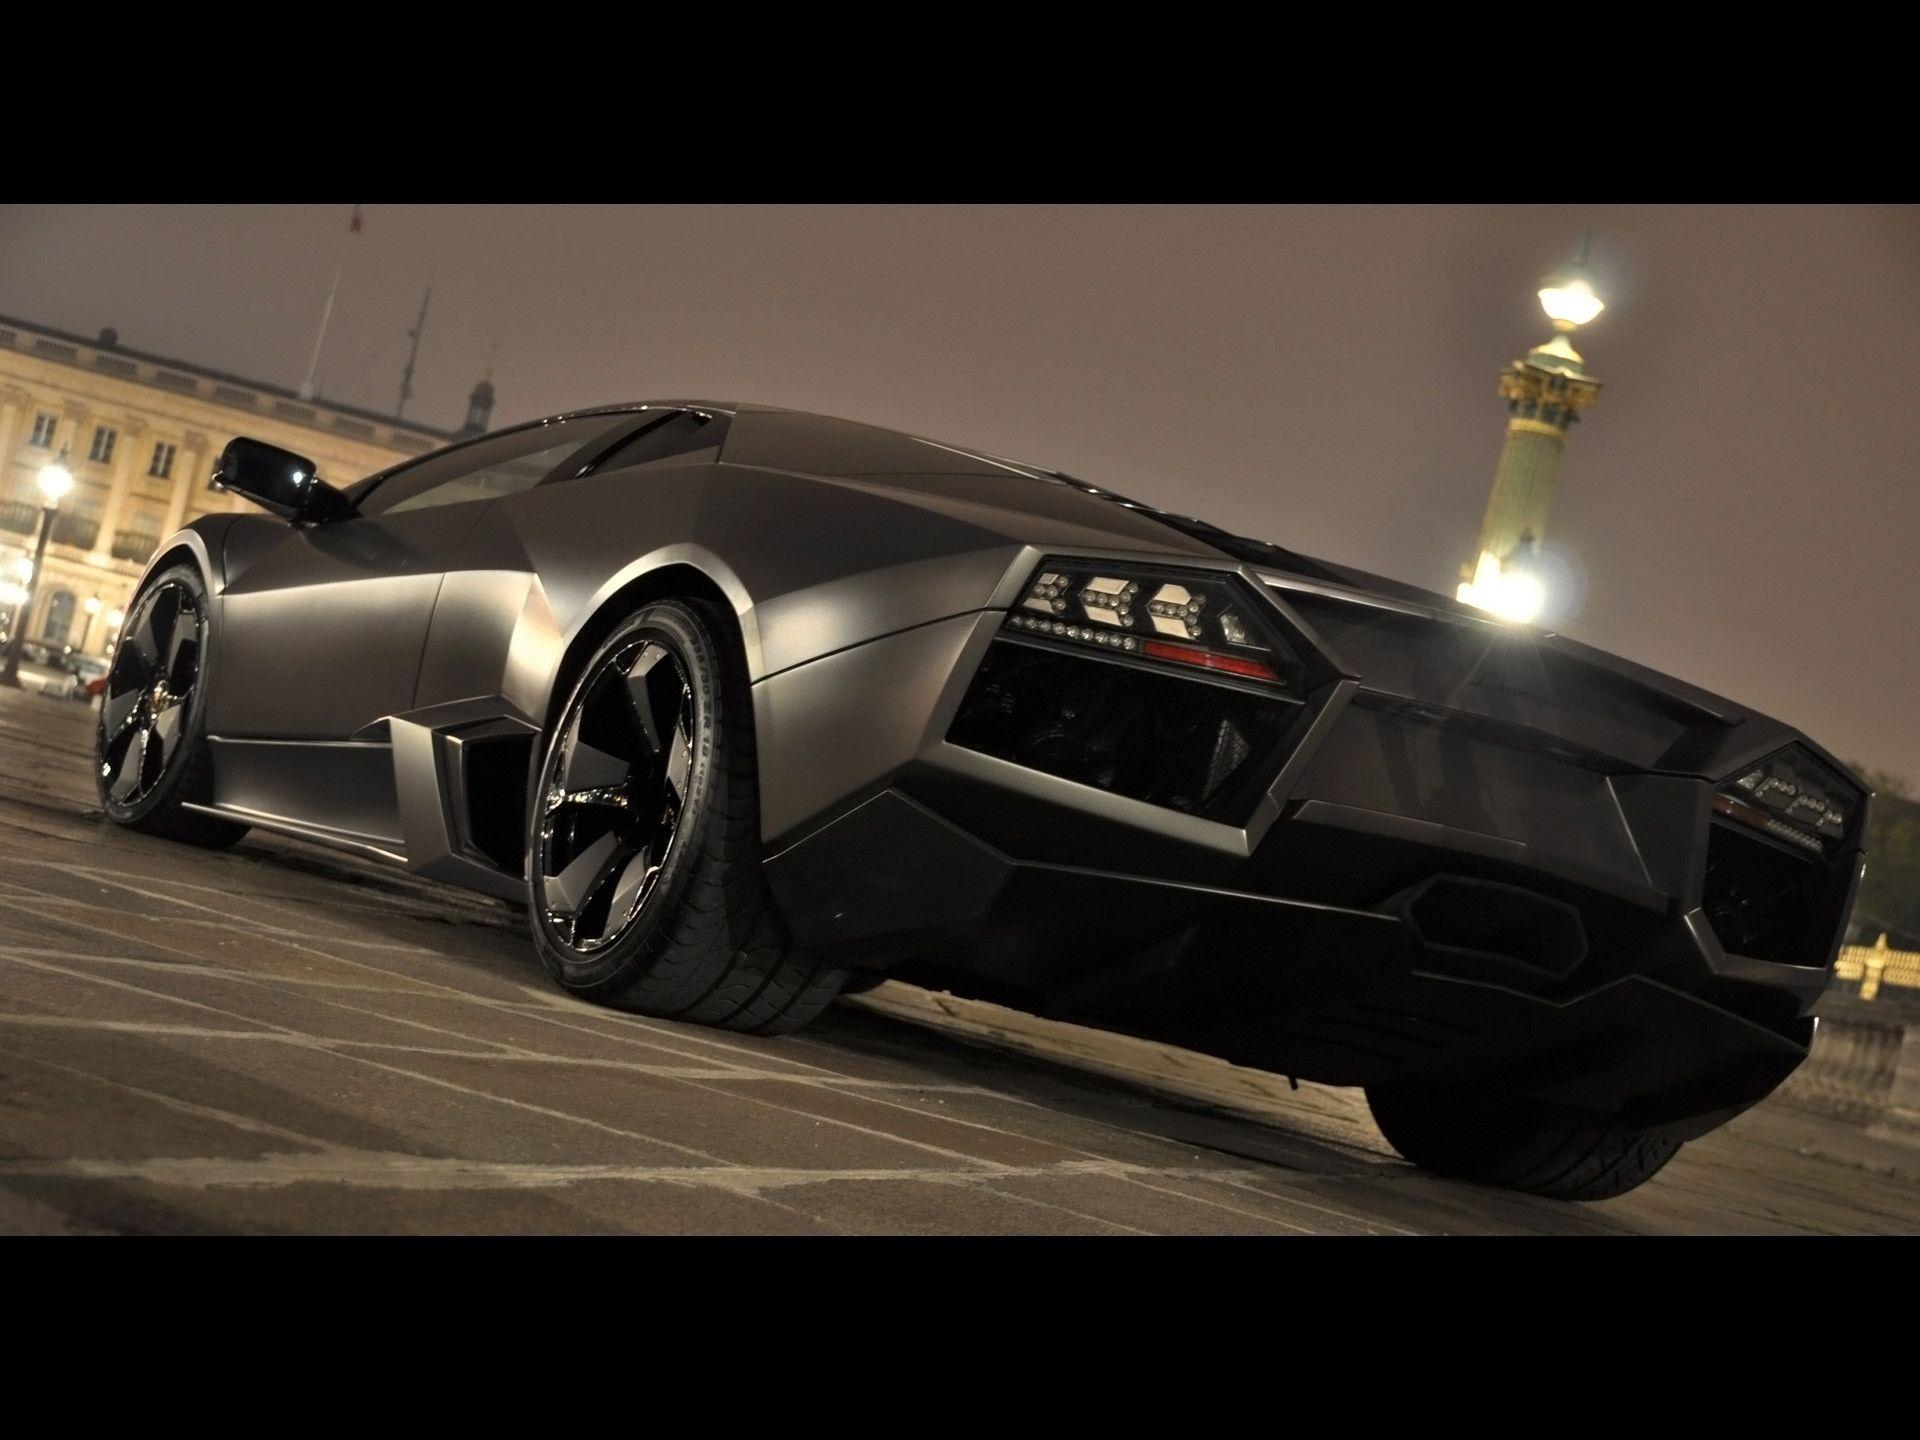 lamborghini reventon image wallpaper - photo #22